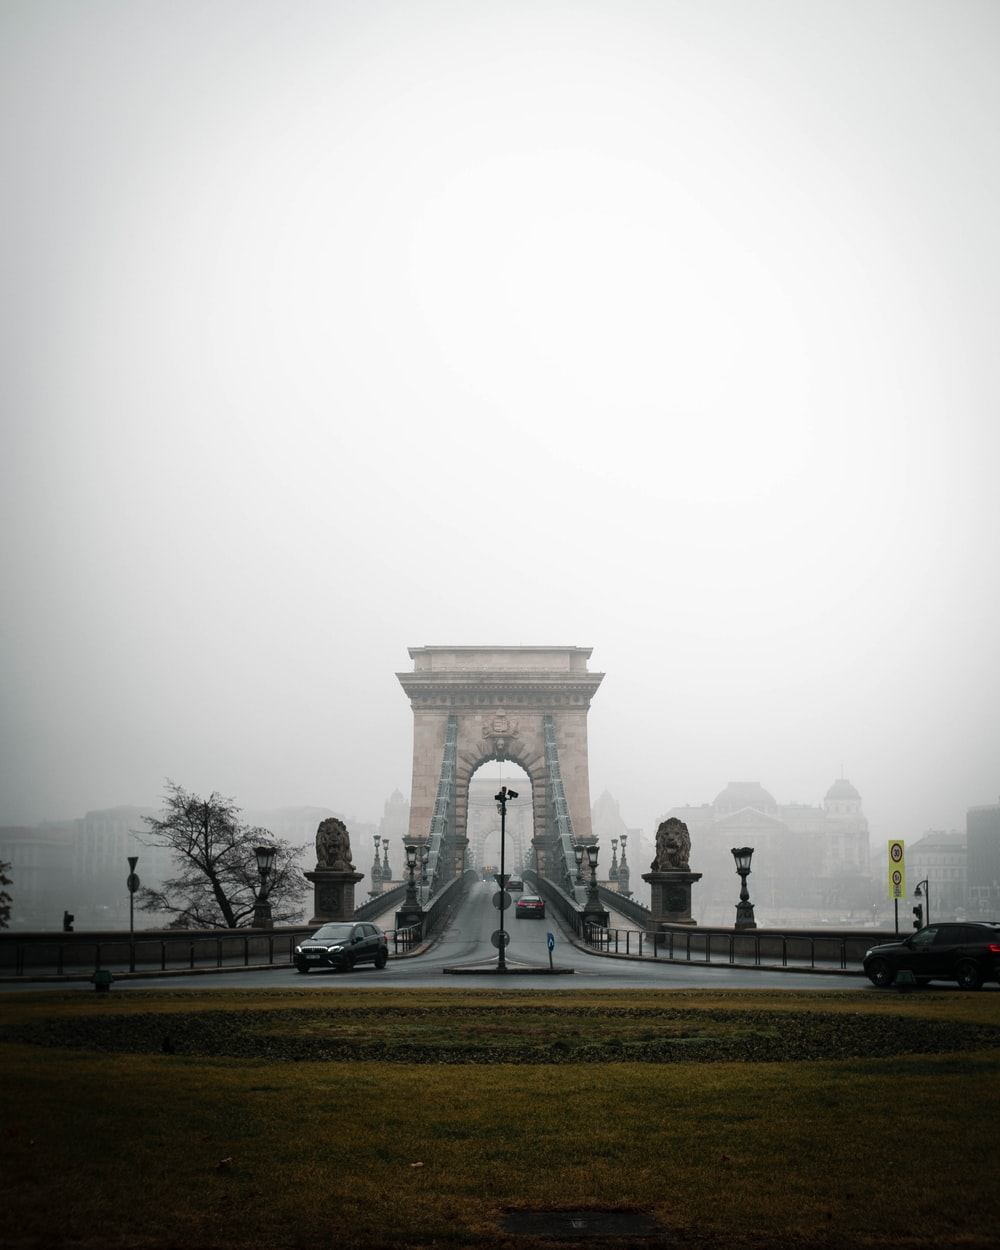 people walking on gray concrete pathway during foggy weather